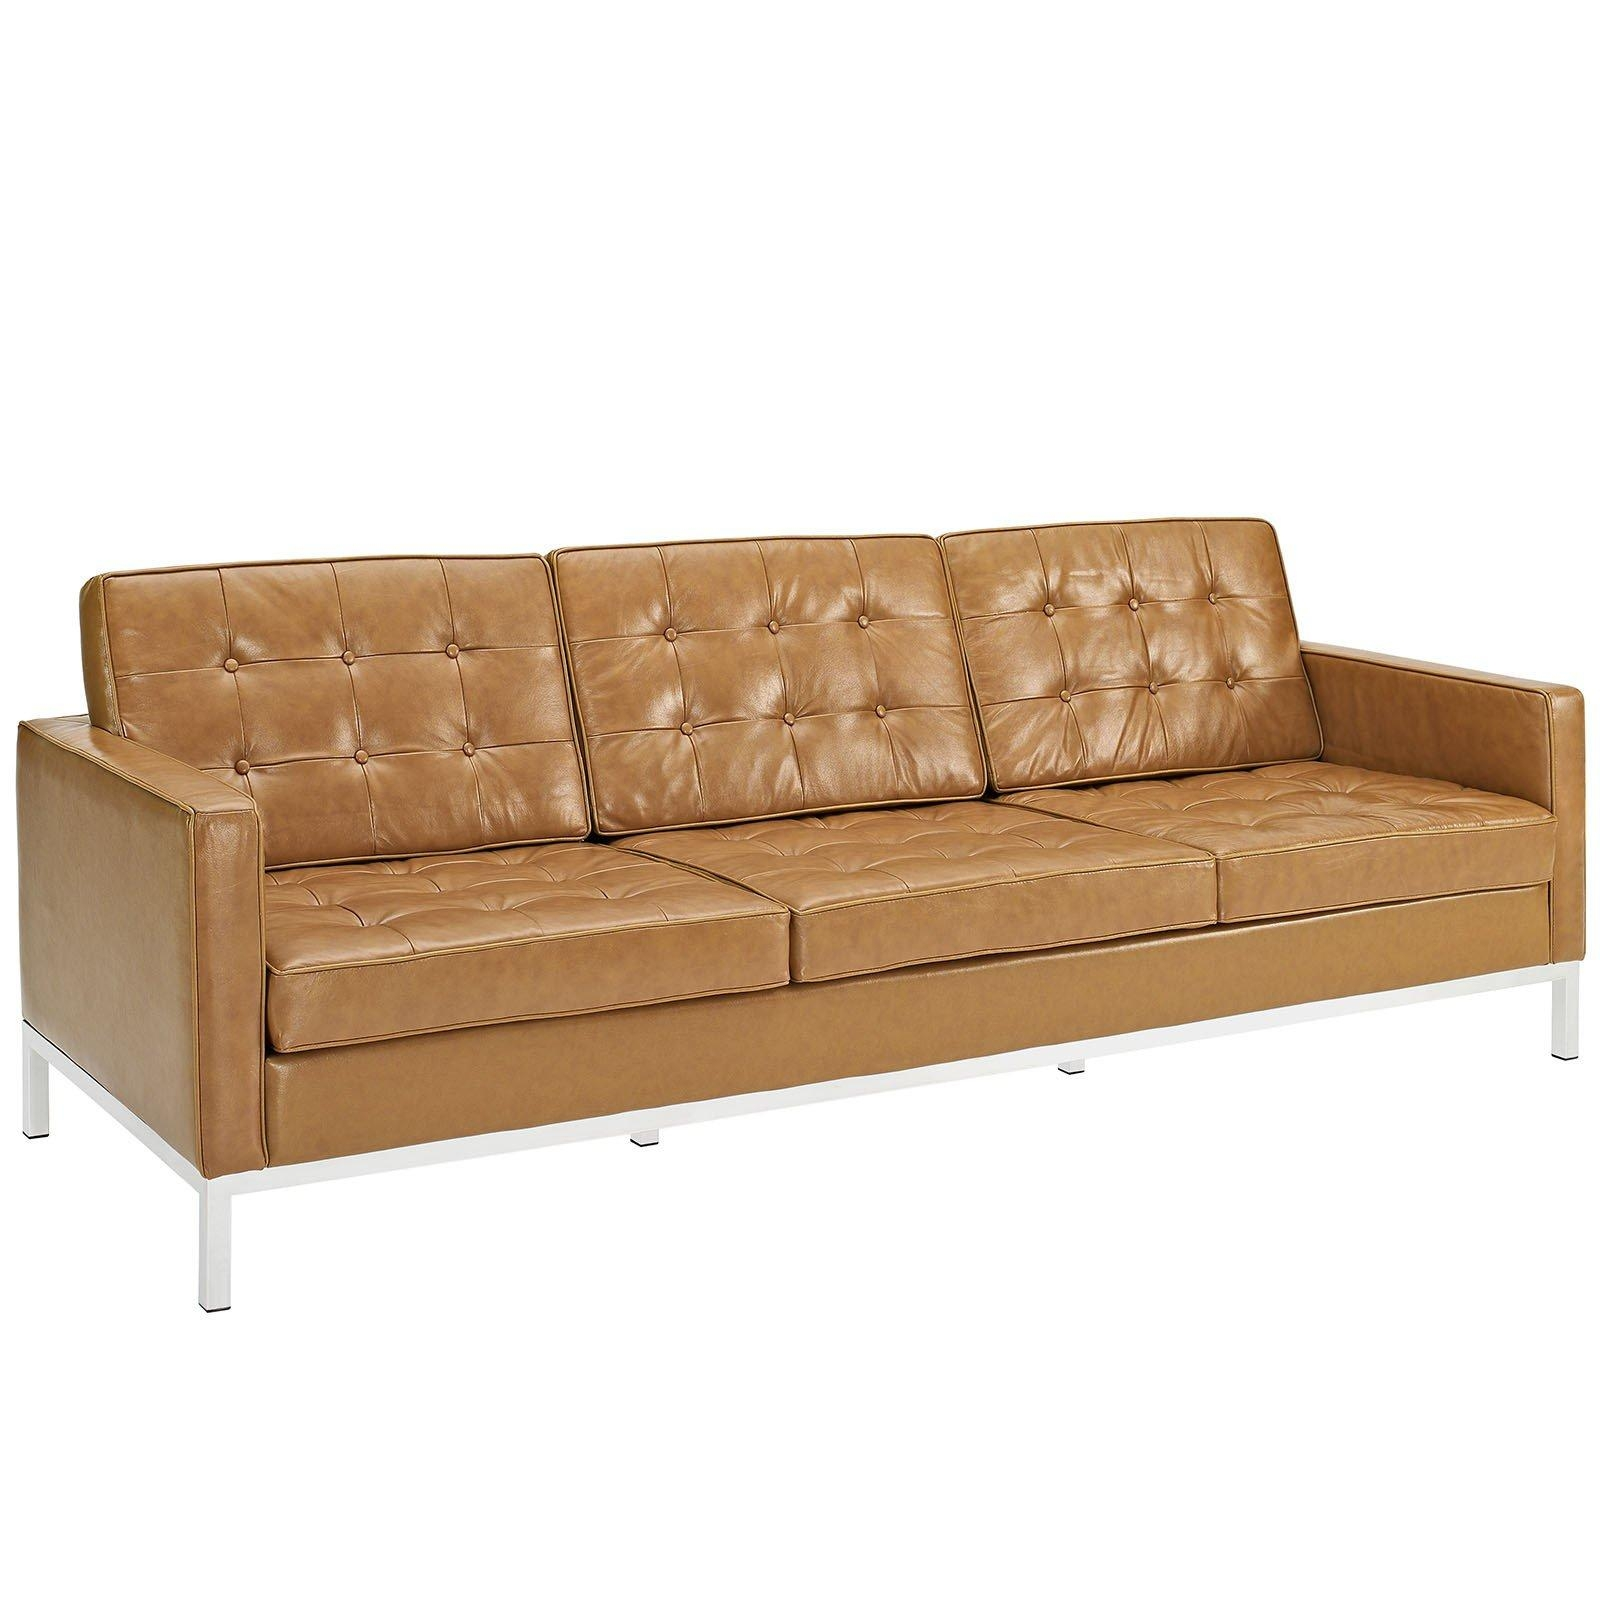 best florence knoll sofa reproduction bright green leather 20 ideas sofas